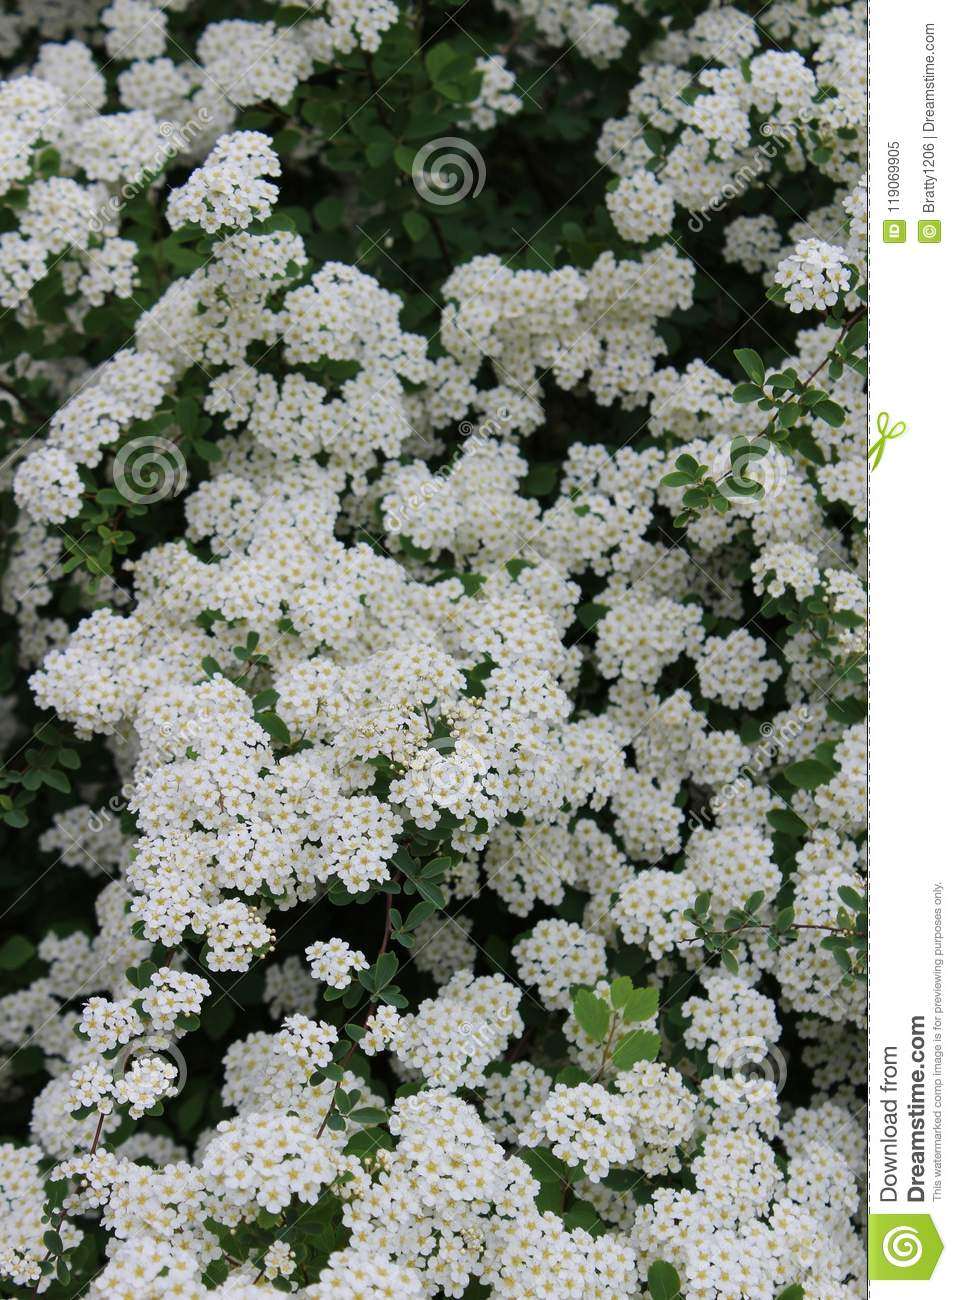 Pretty White Clusters Of Flowers On Healthy Bushes With